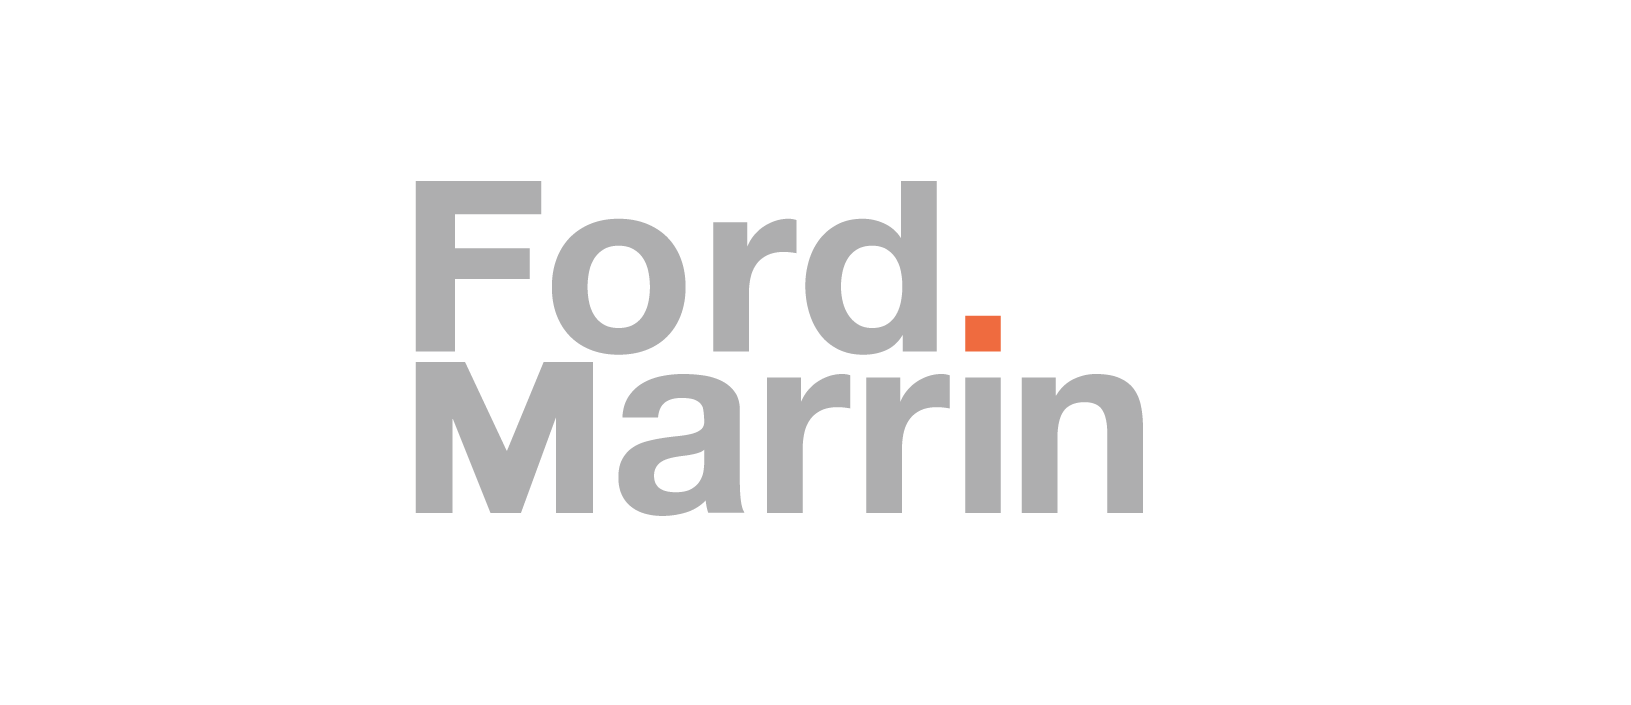 Ford-marrin-website-mslk-logo